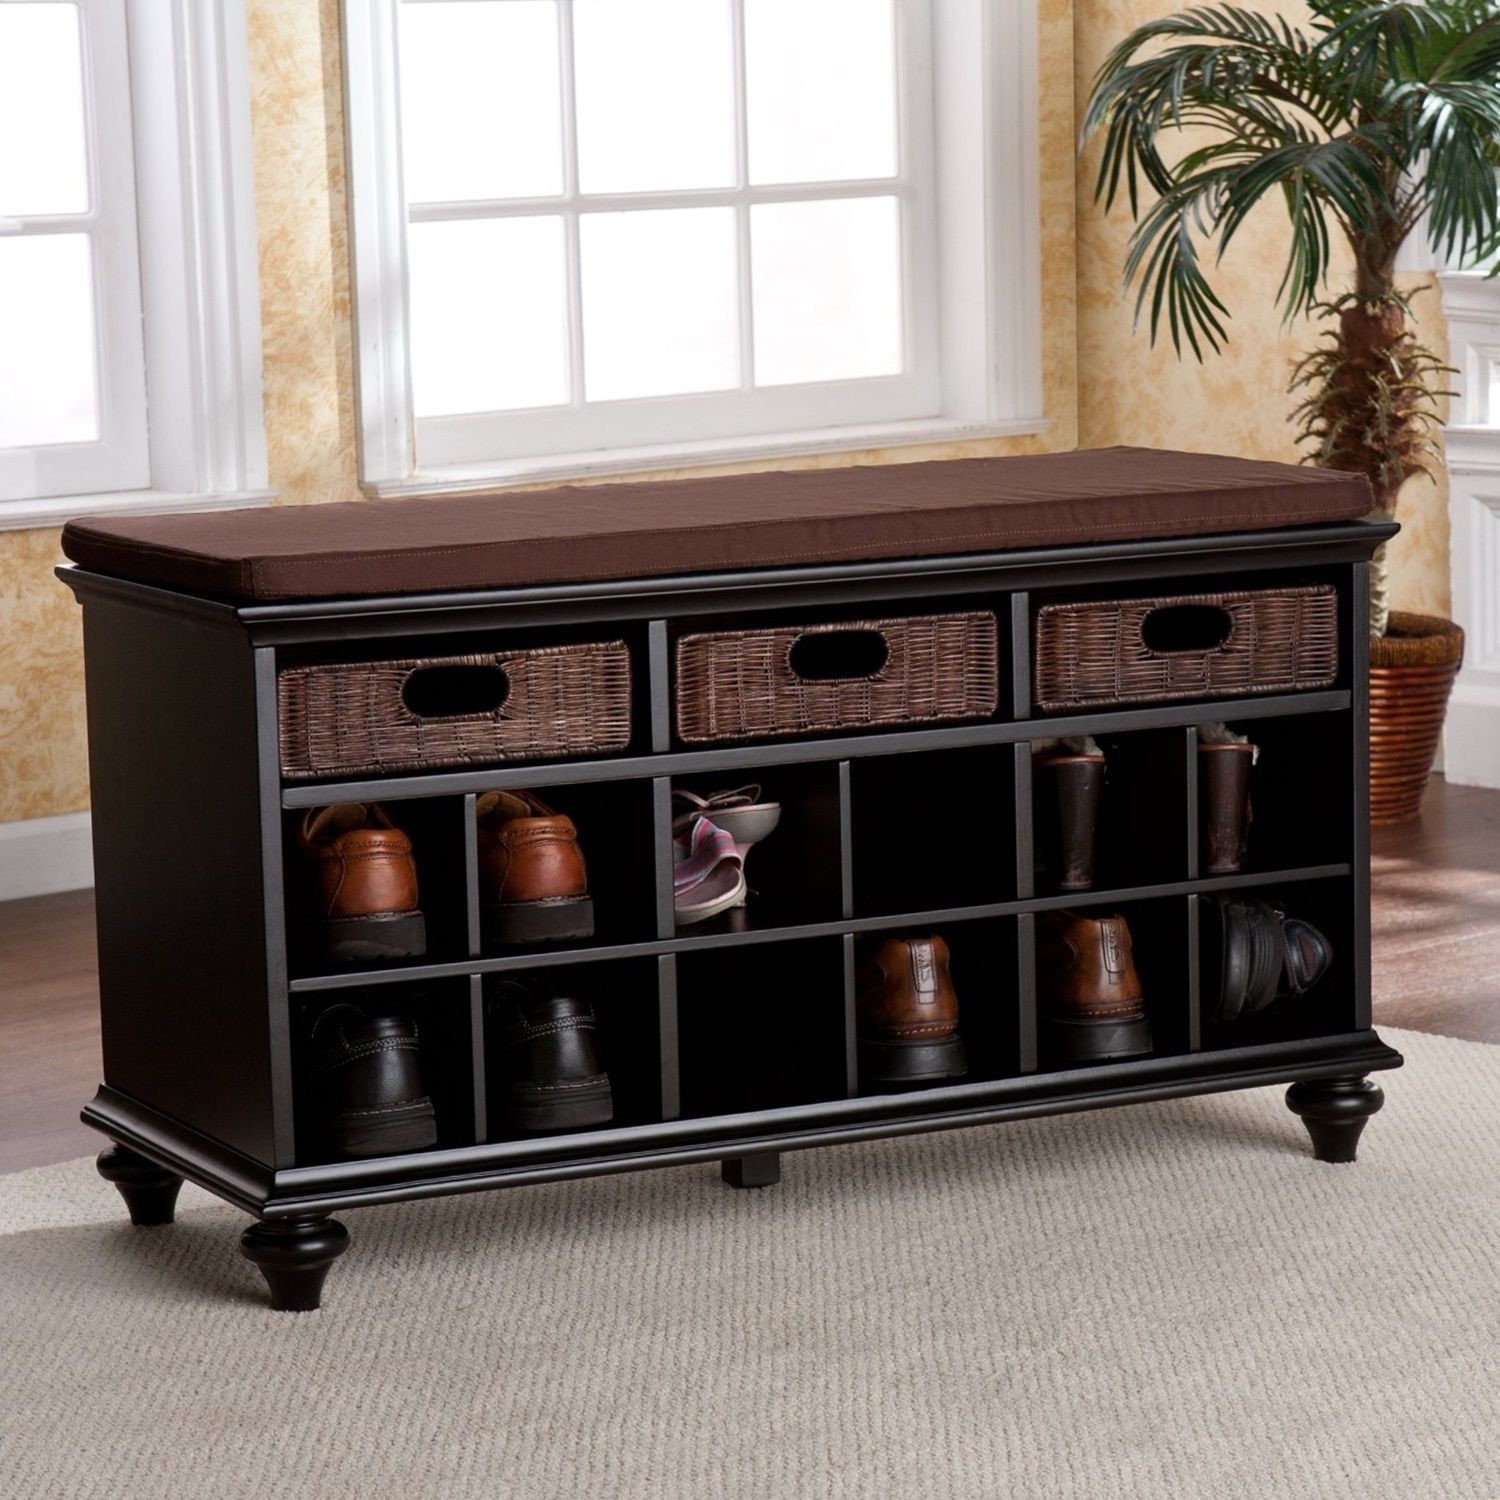 Shoe storage bench rattan drawers entryway corridor hallway hall vestibule foyer shoe organizers Entryway shoe storage bench